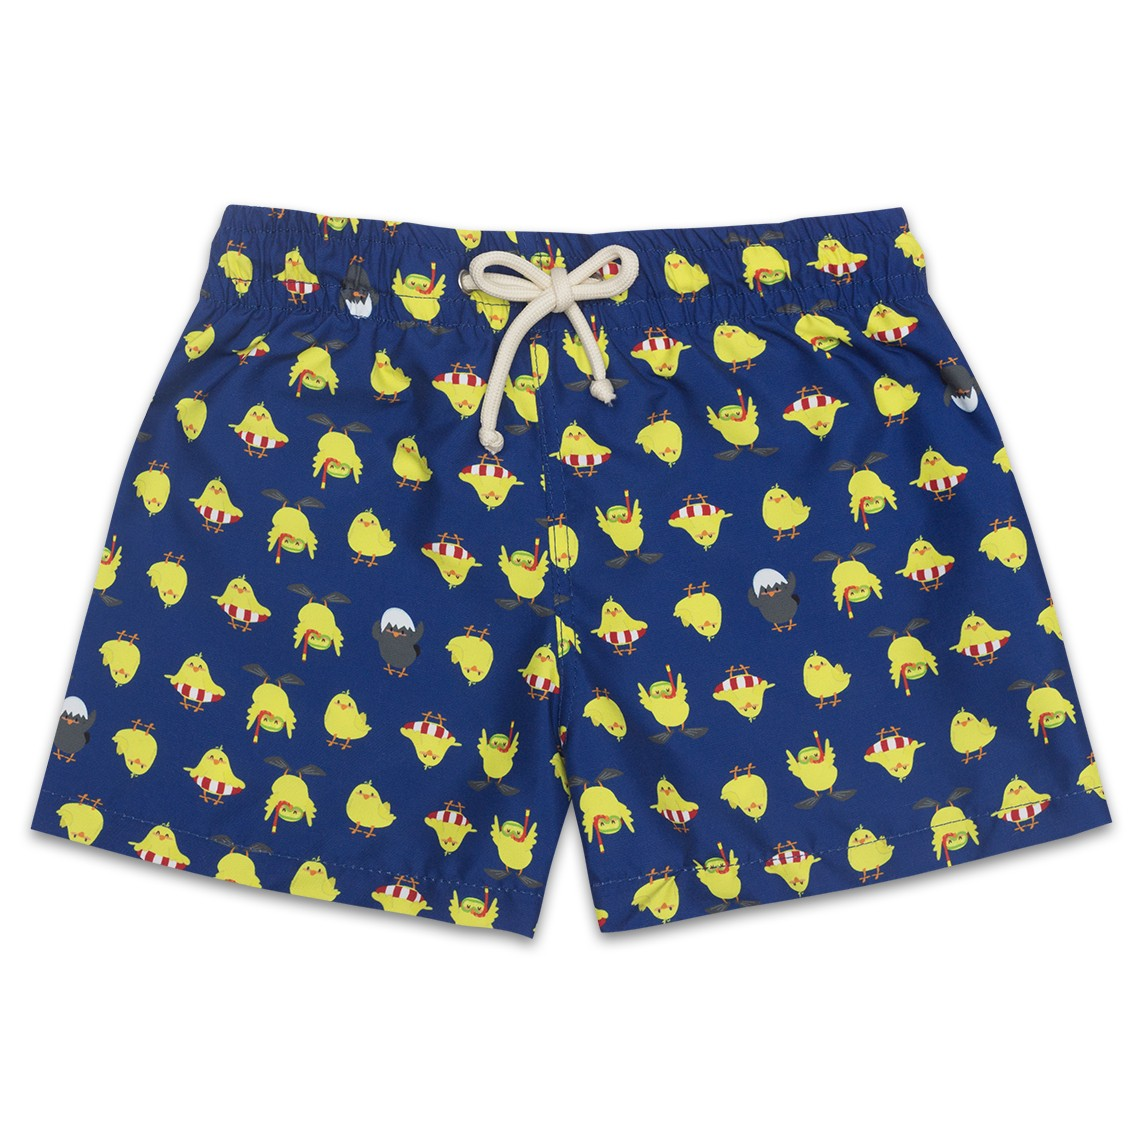 d7e6c55c30 Boy Swim short Dark Blue Chickens 2 to 8 years - Ocoly